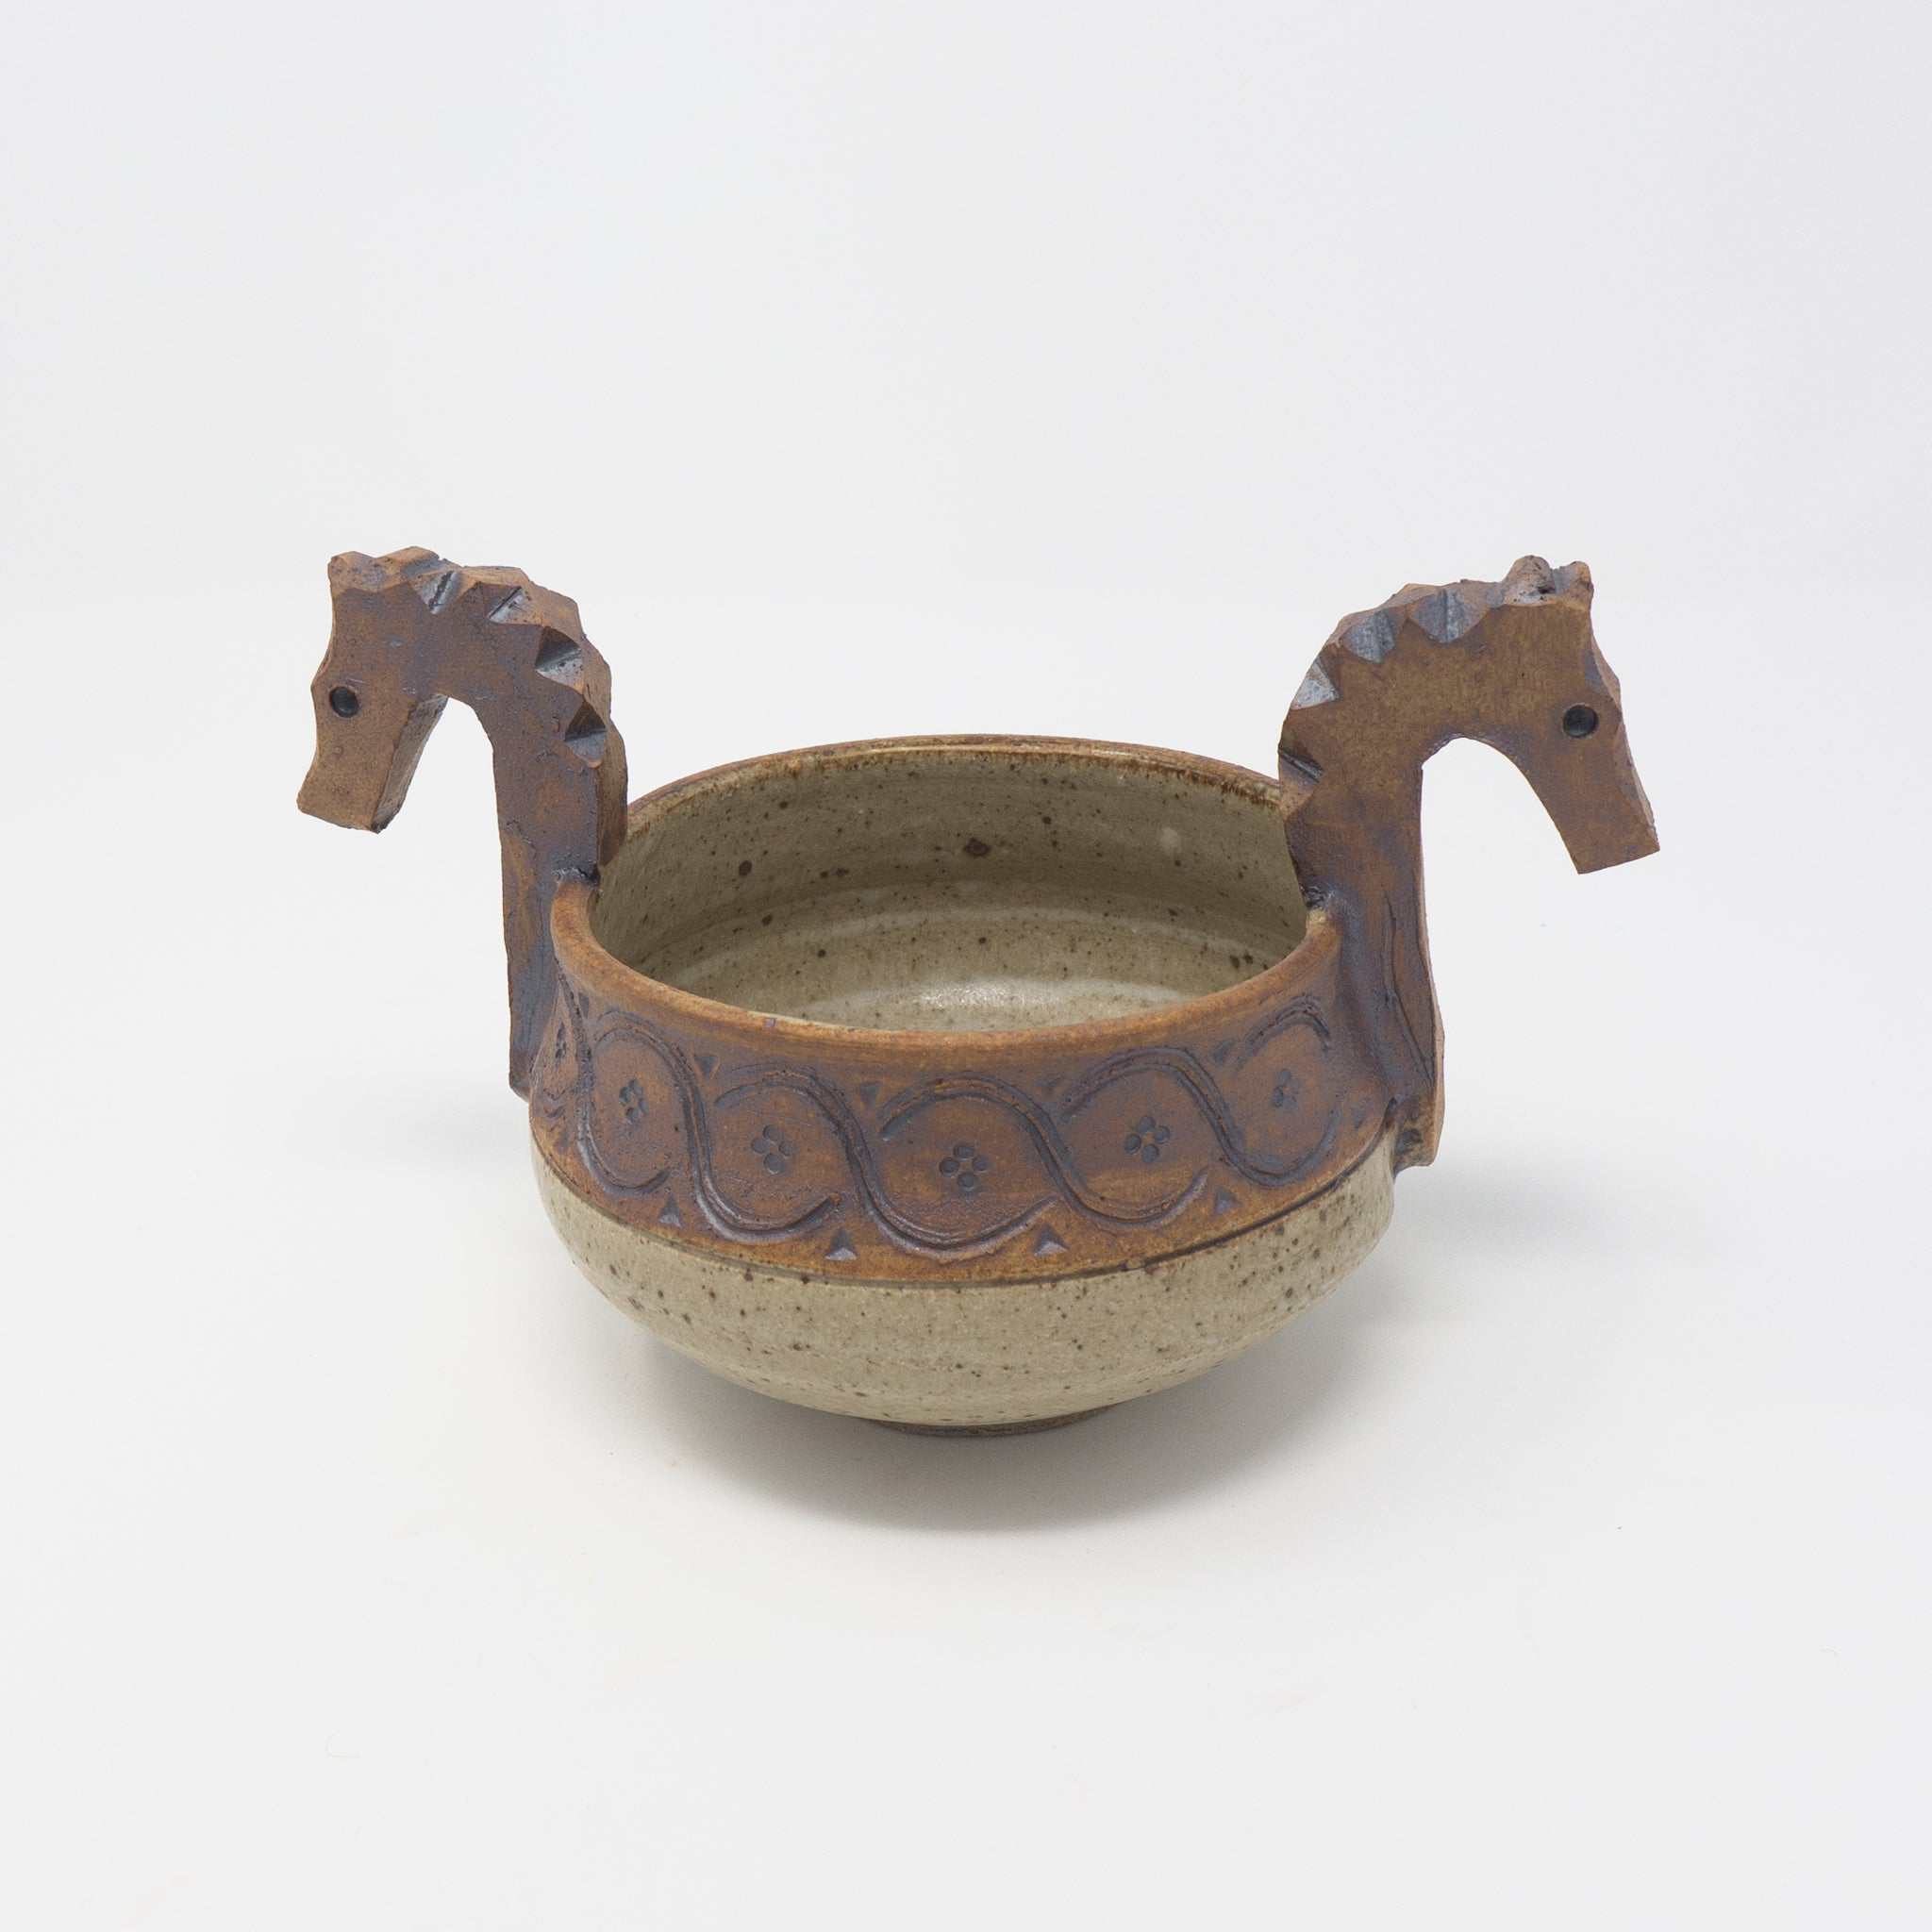 Small Two-Head Ale Bowl